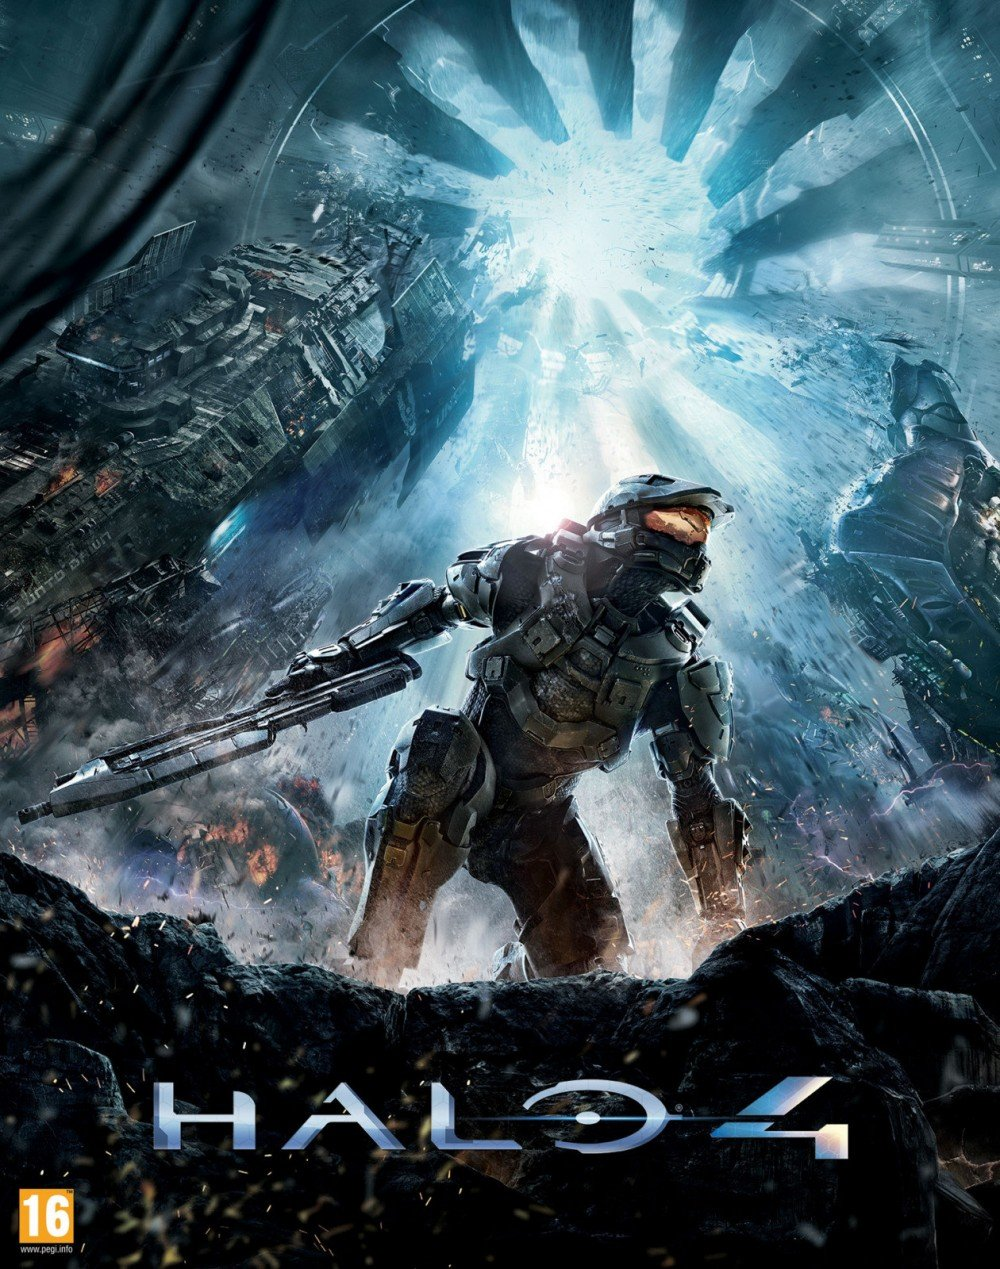 Poster Halo 4 [Portable] (2012-2020) download torrent License